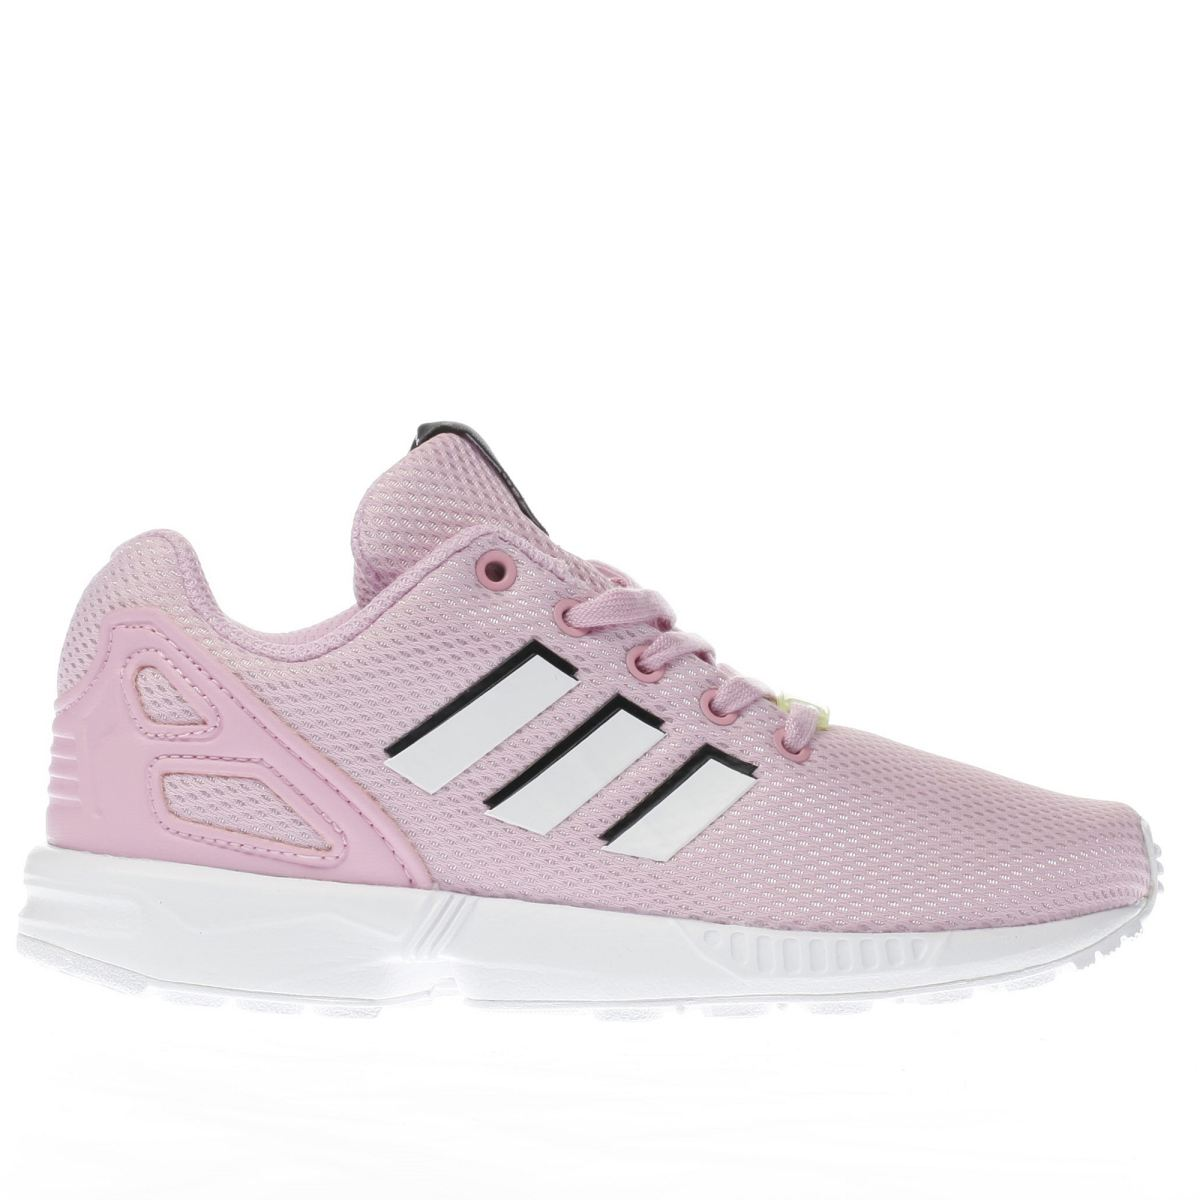 adidas pale pink zx flux Girls Junior Trainers